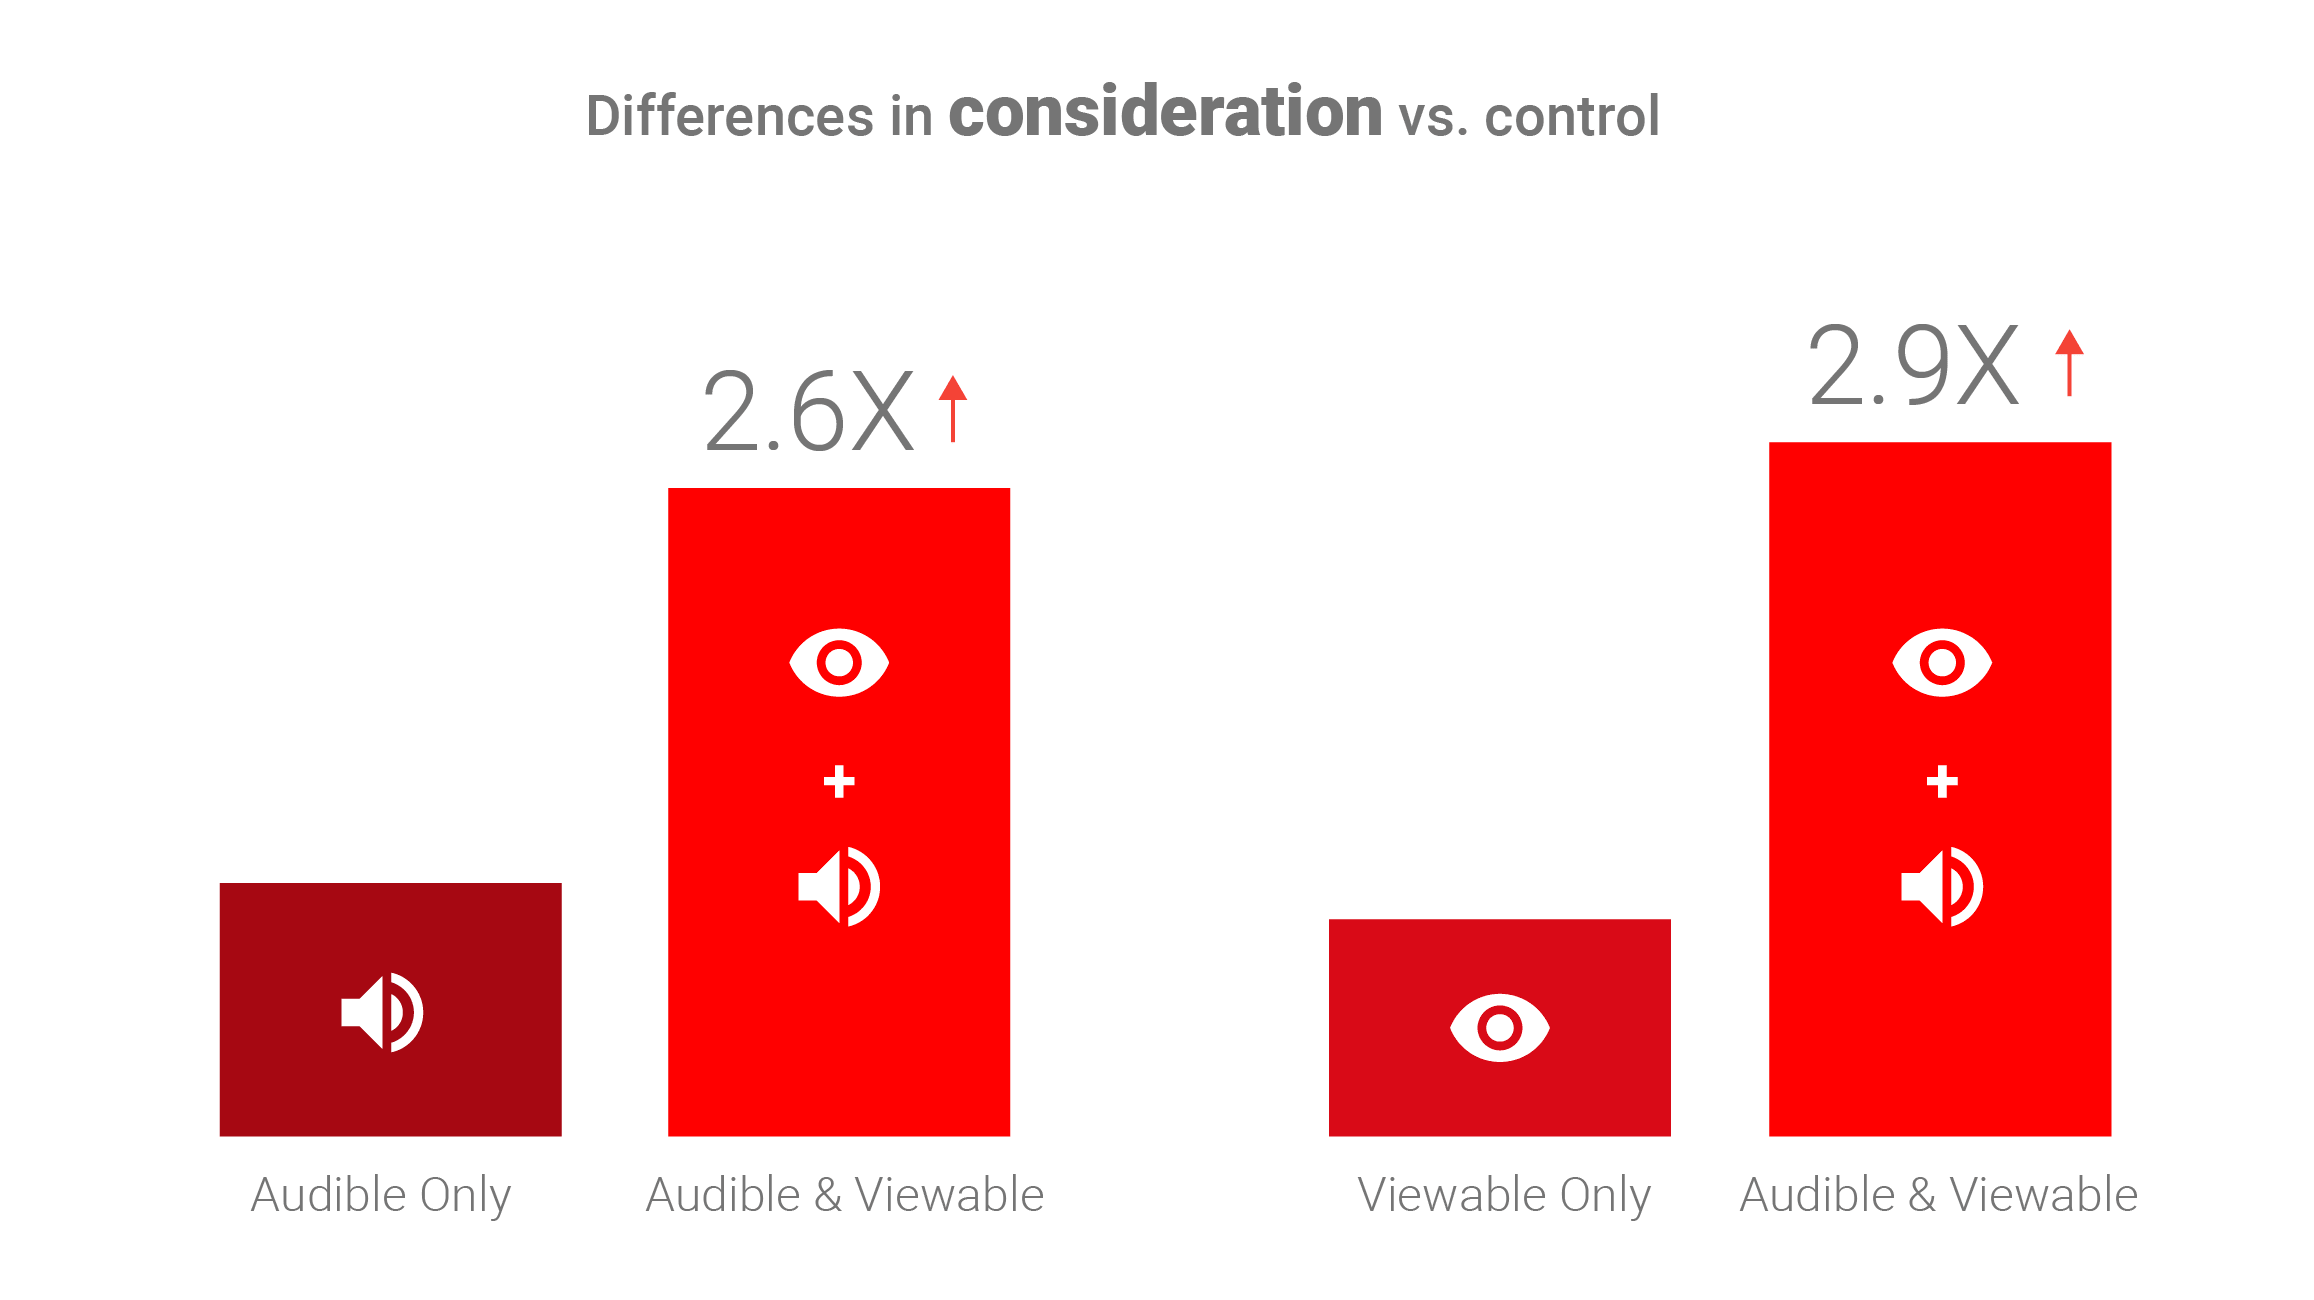 Viewable/audible ad content: brand consideration